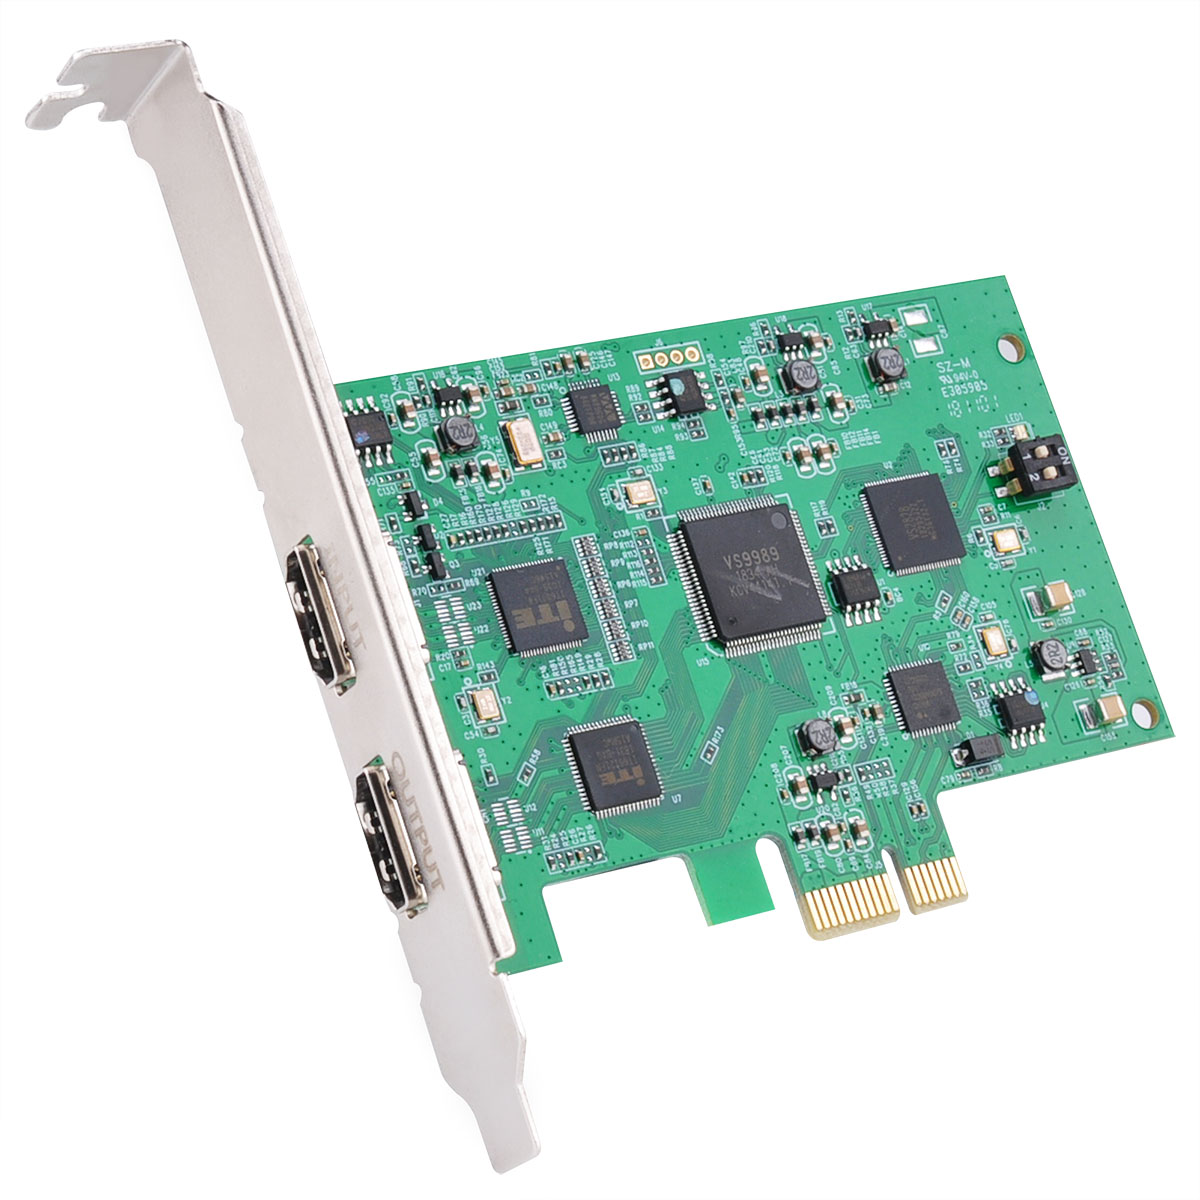 PCI-E HDMI Video Capture Card 4K 30 input ezcap294